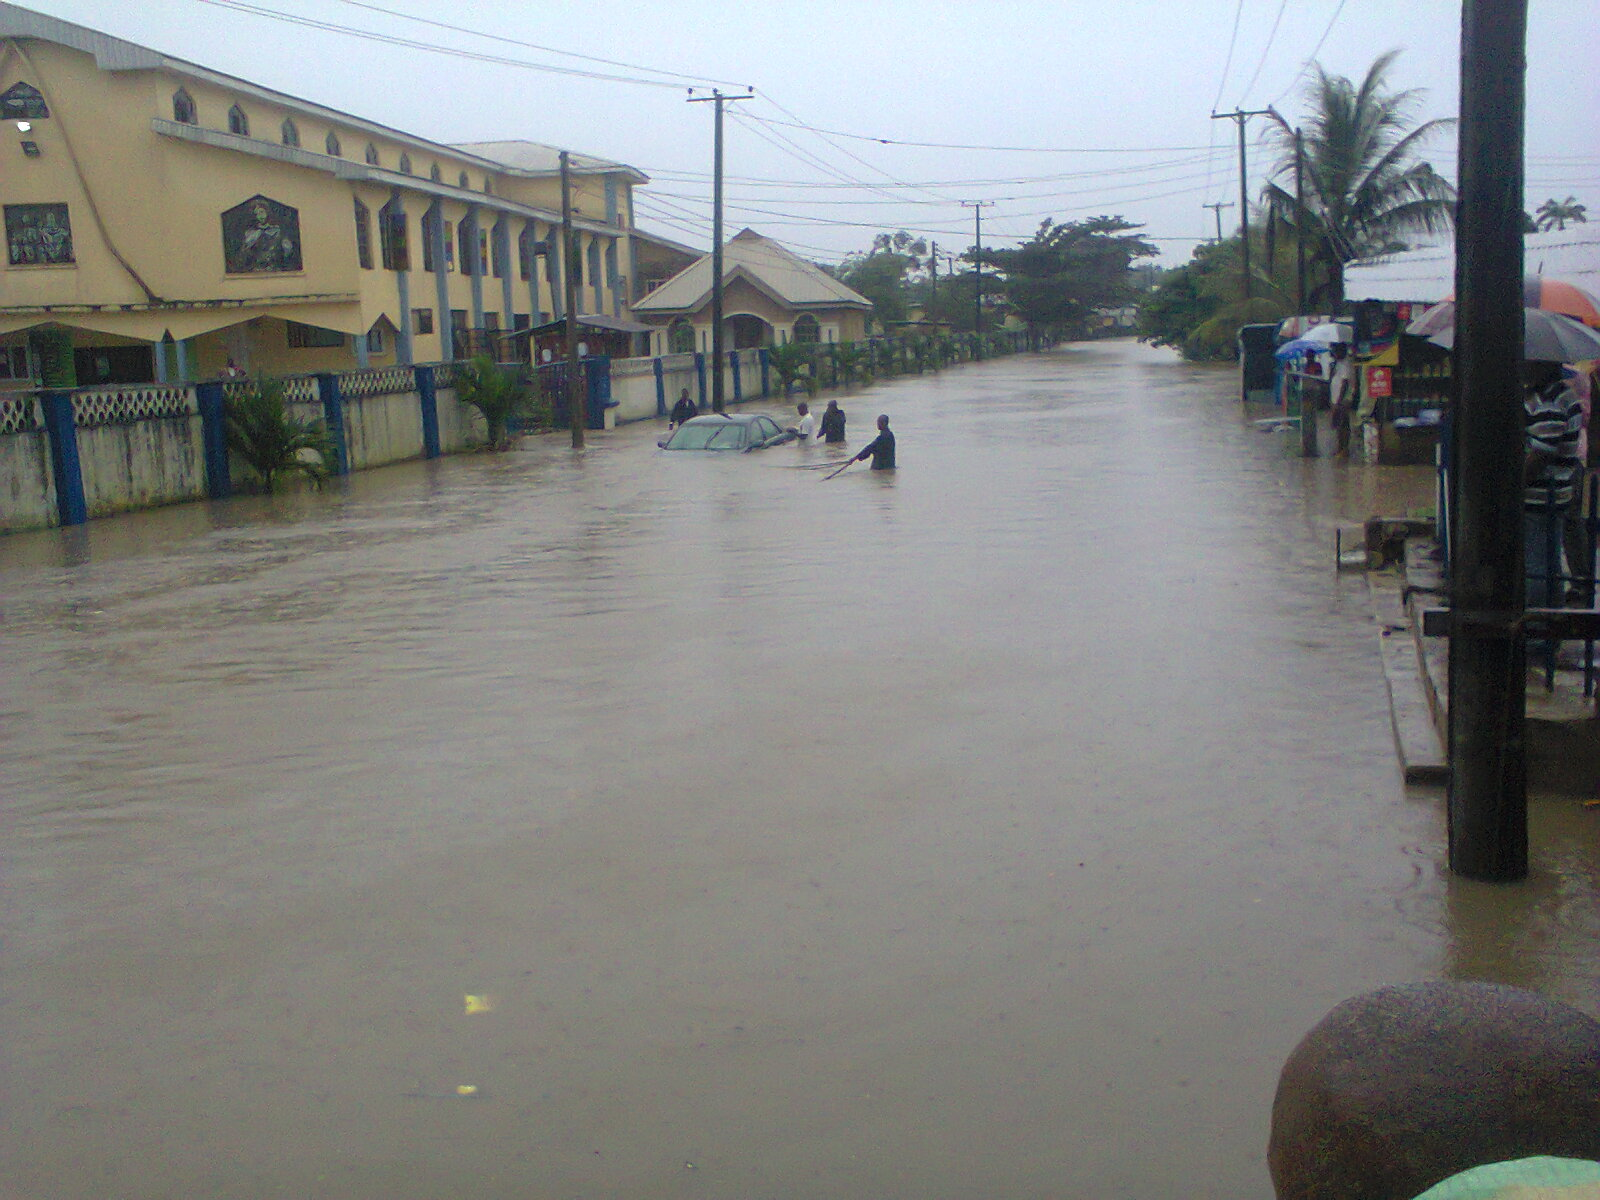 Flooded Calabar streets yesterday